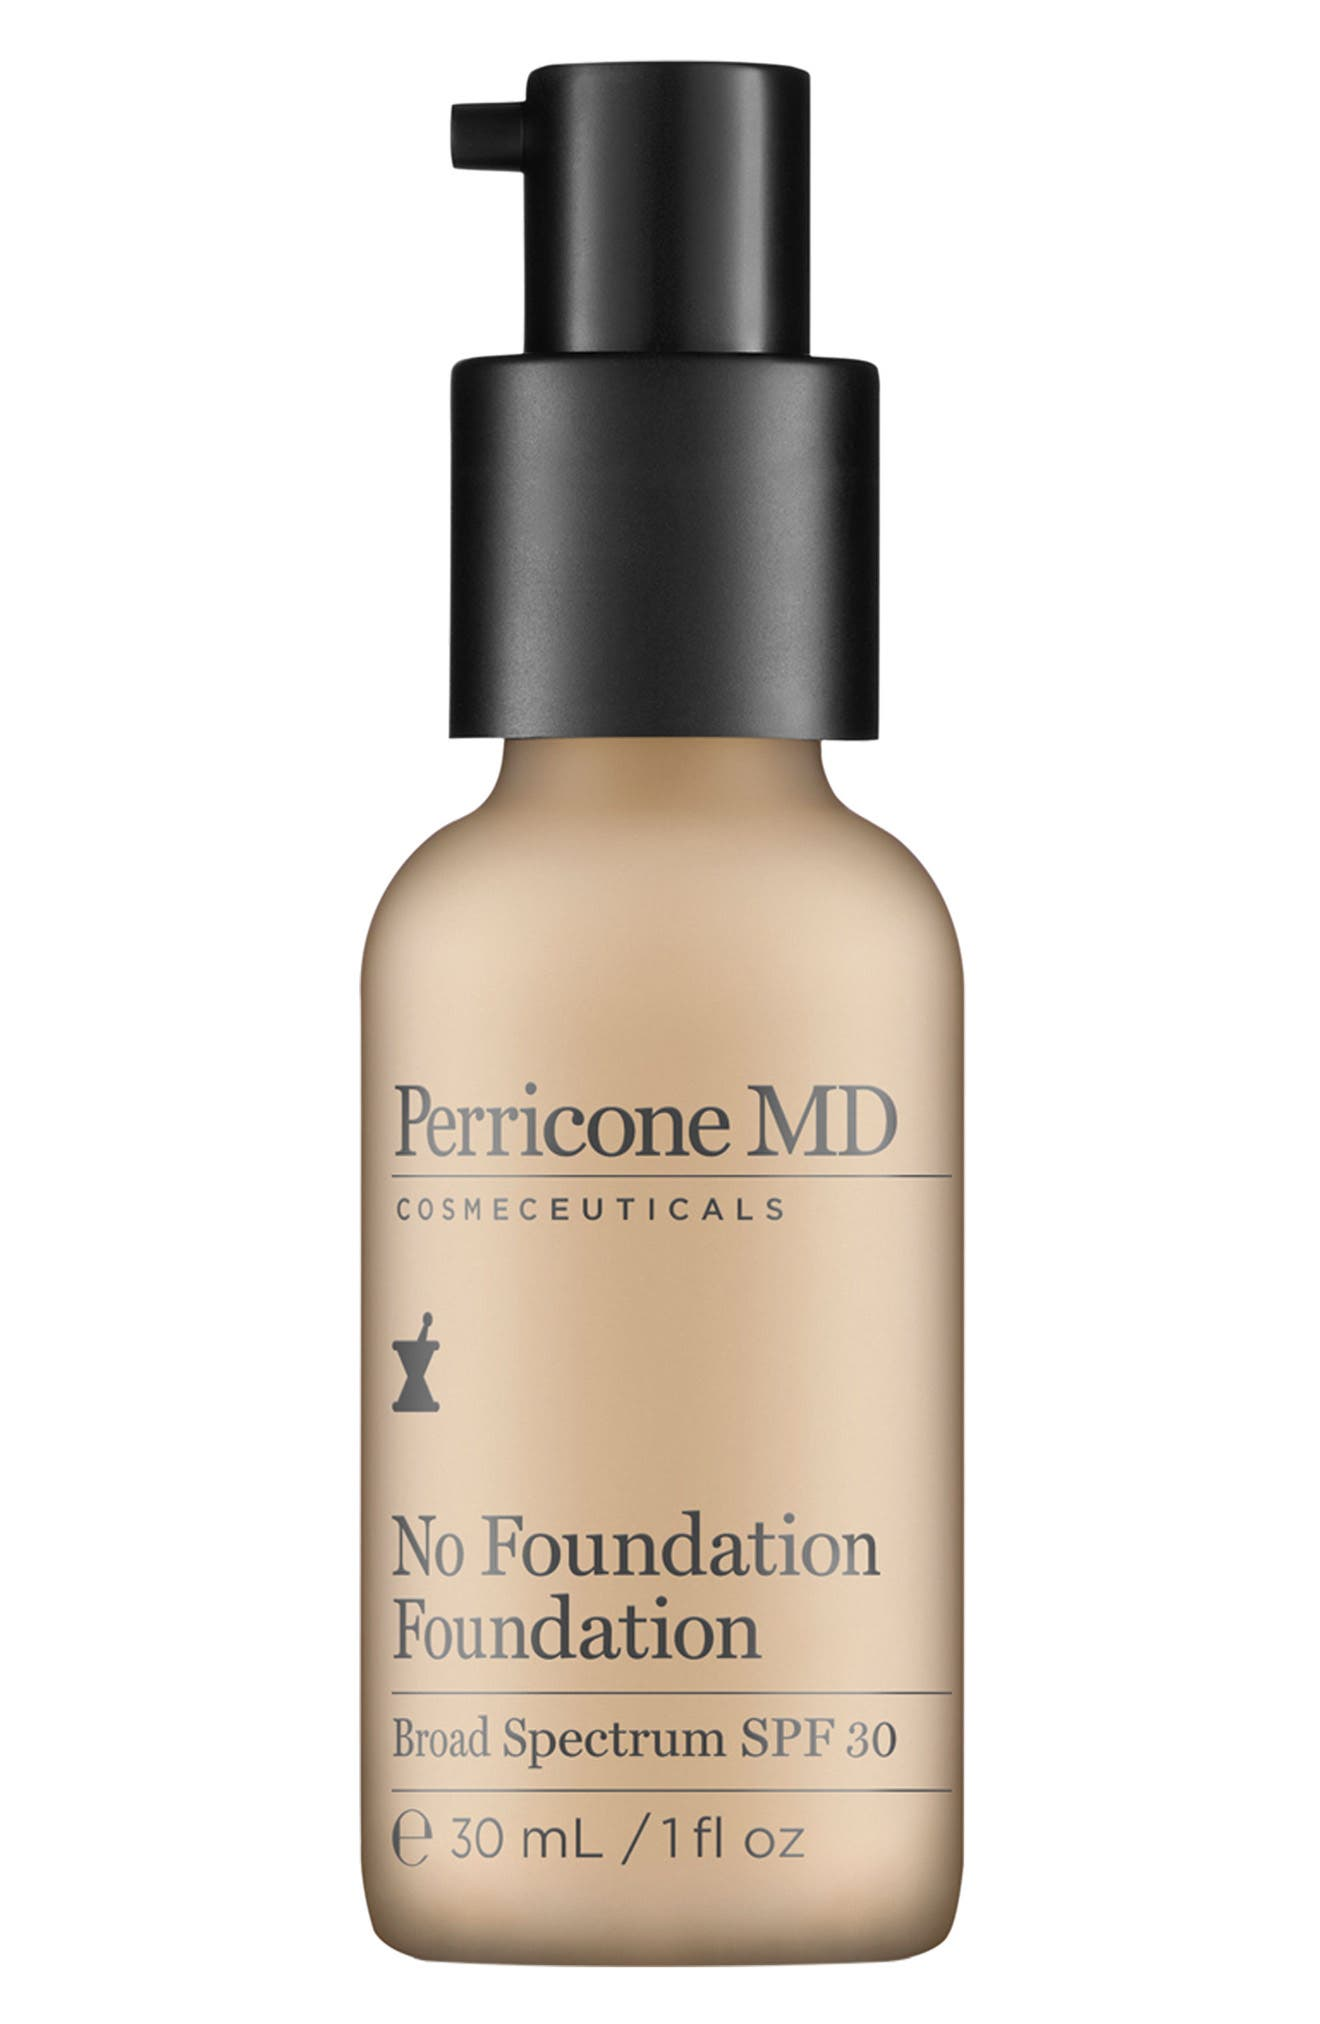 Perricone MD No Foundation Foundation Broad Spectrum SPF 30